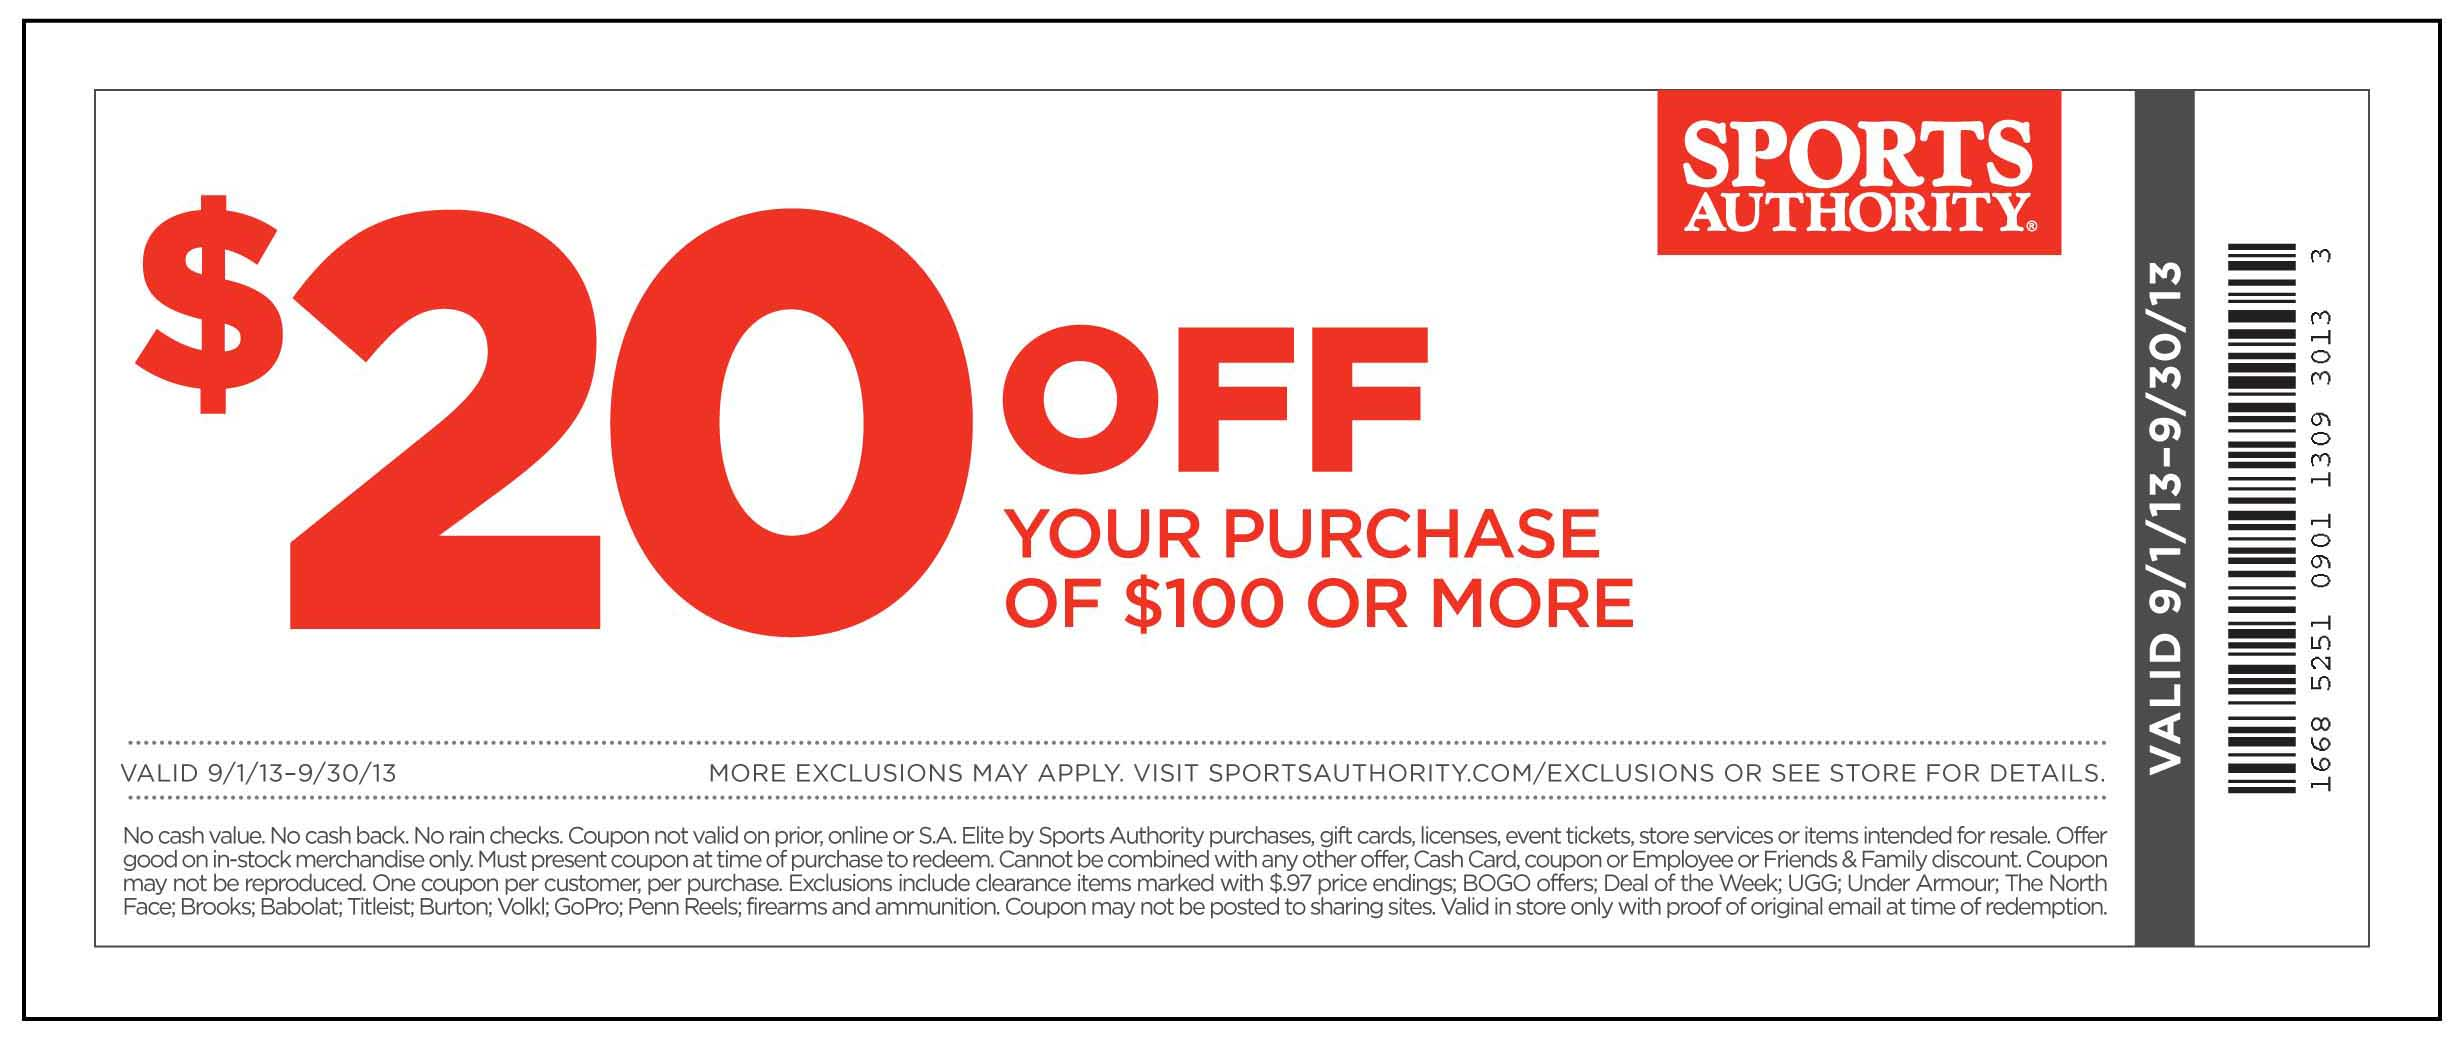 photograph regarding Academy Sports Coupons $10 Off Printable called Sporting activities authority coupon 20 off printable - Las vegas clearly show